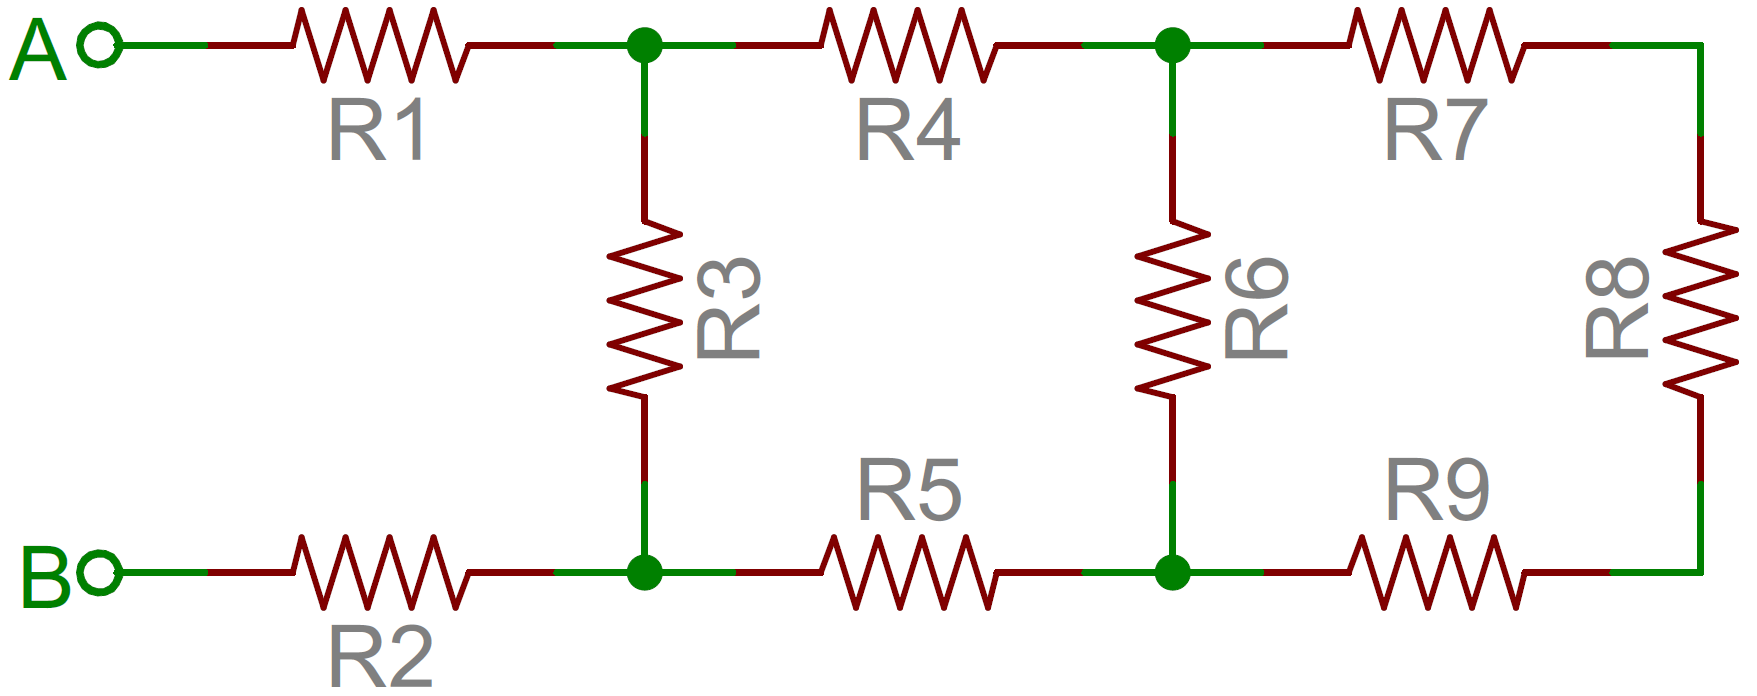 An example of a resistor network